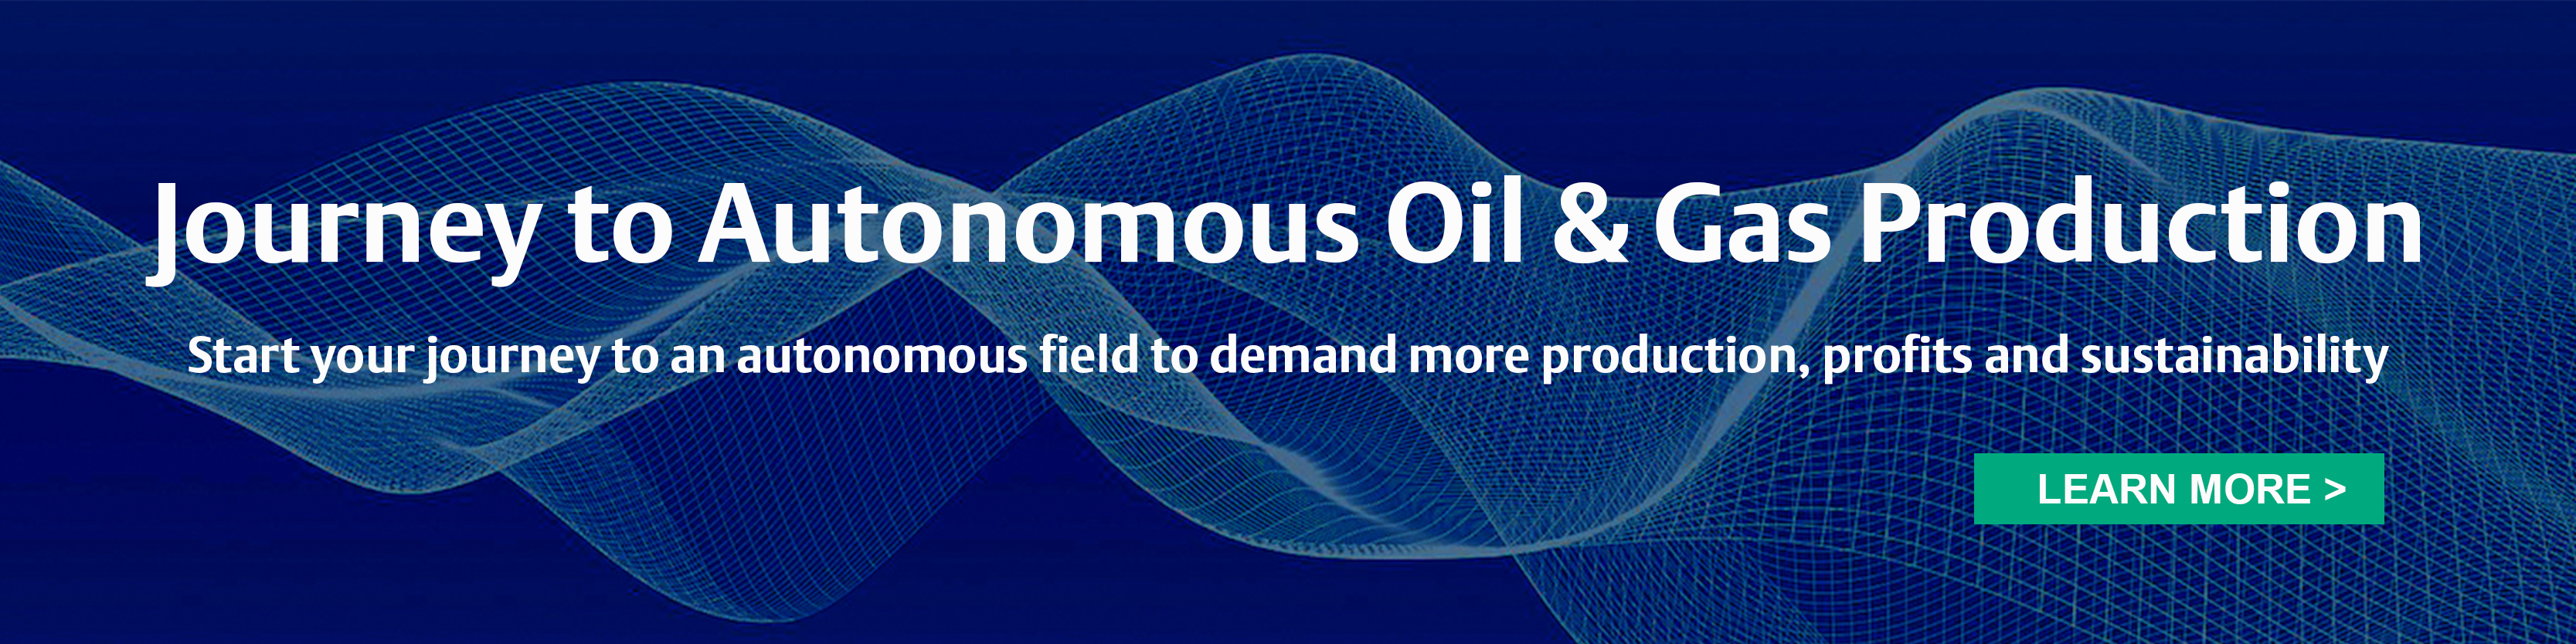 Autonomous oil and gas production